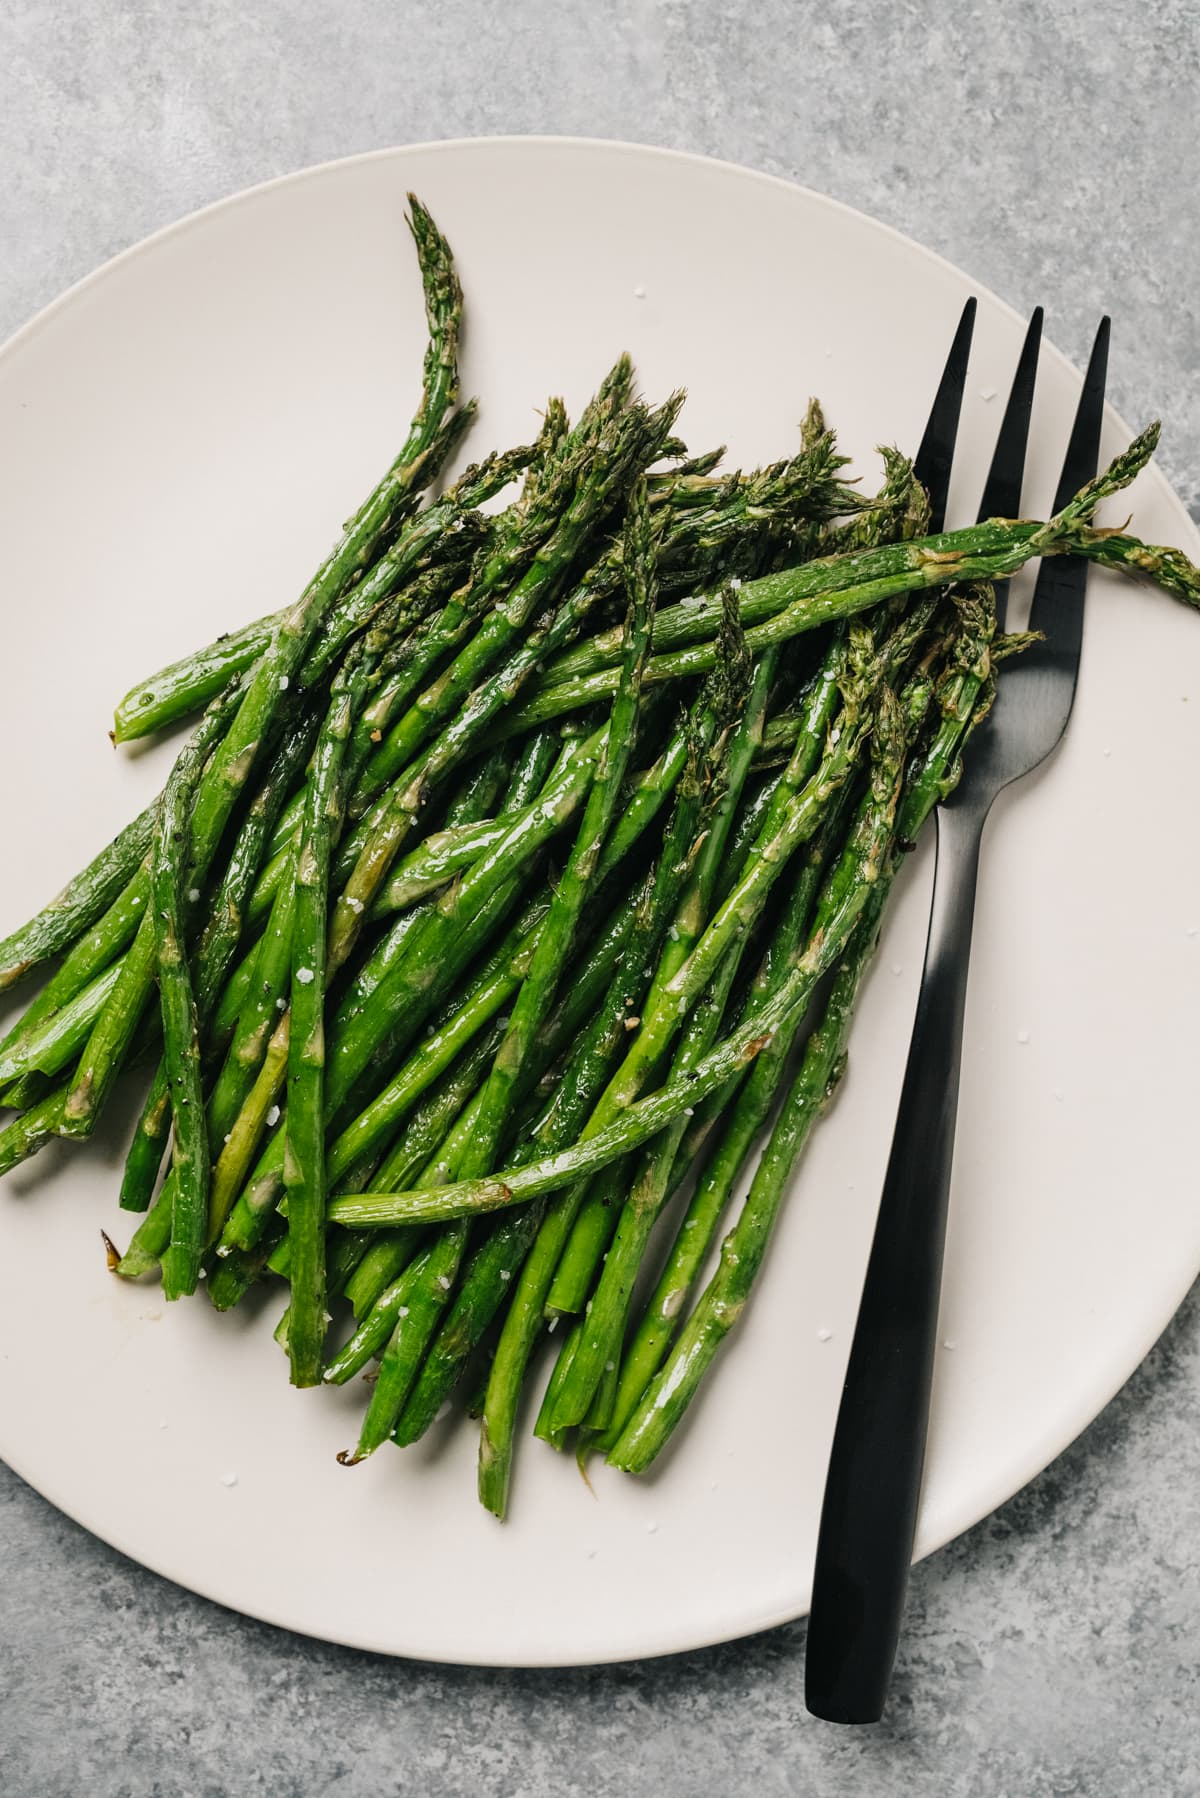 Air fryer asparagus on a cream plate with a silver serving fork on a concrete background.